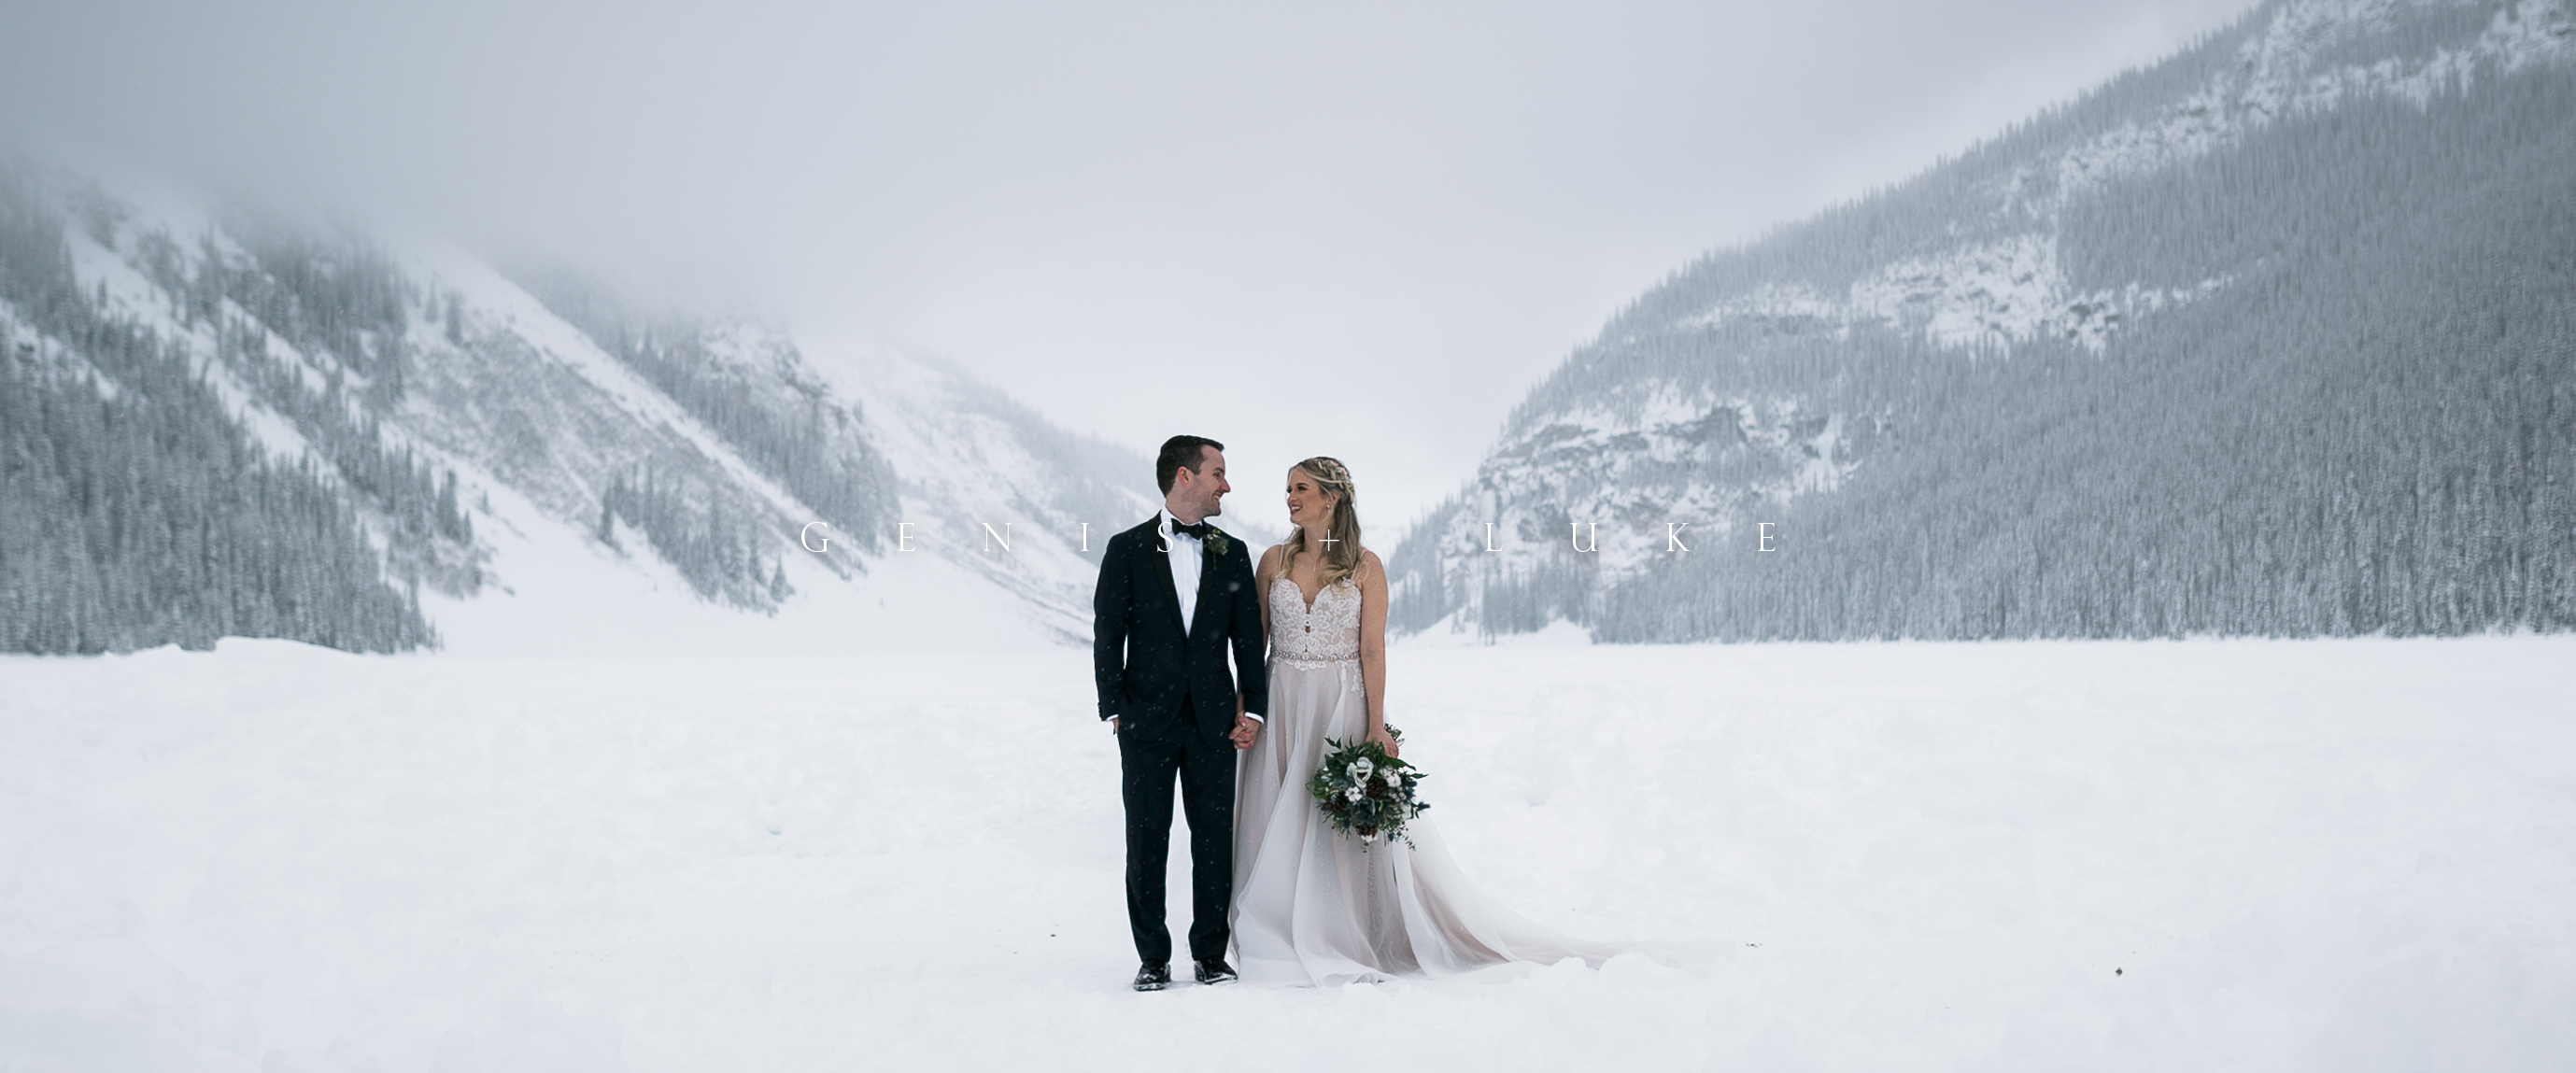 Genis + Luke | Lake Louise, Canada | fairmont chateau lake louise